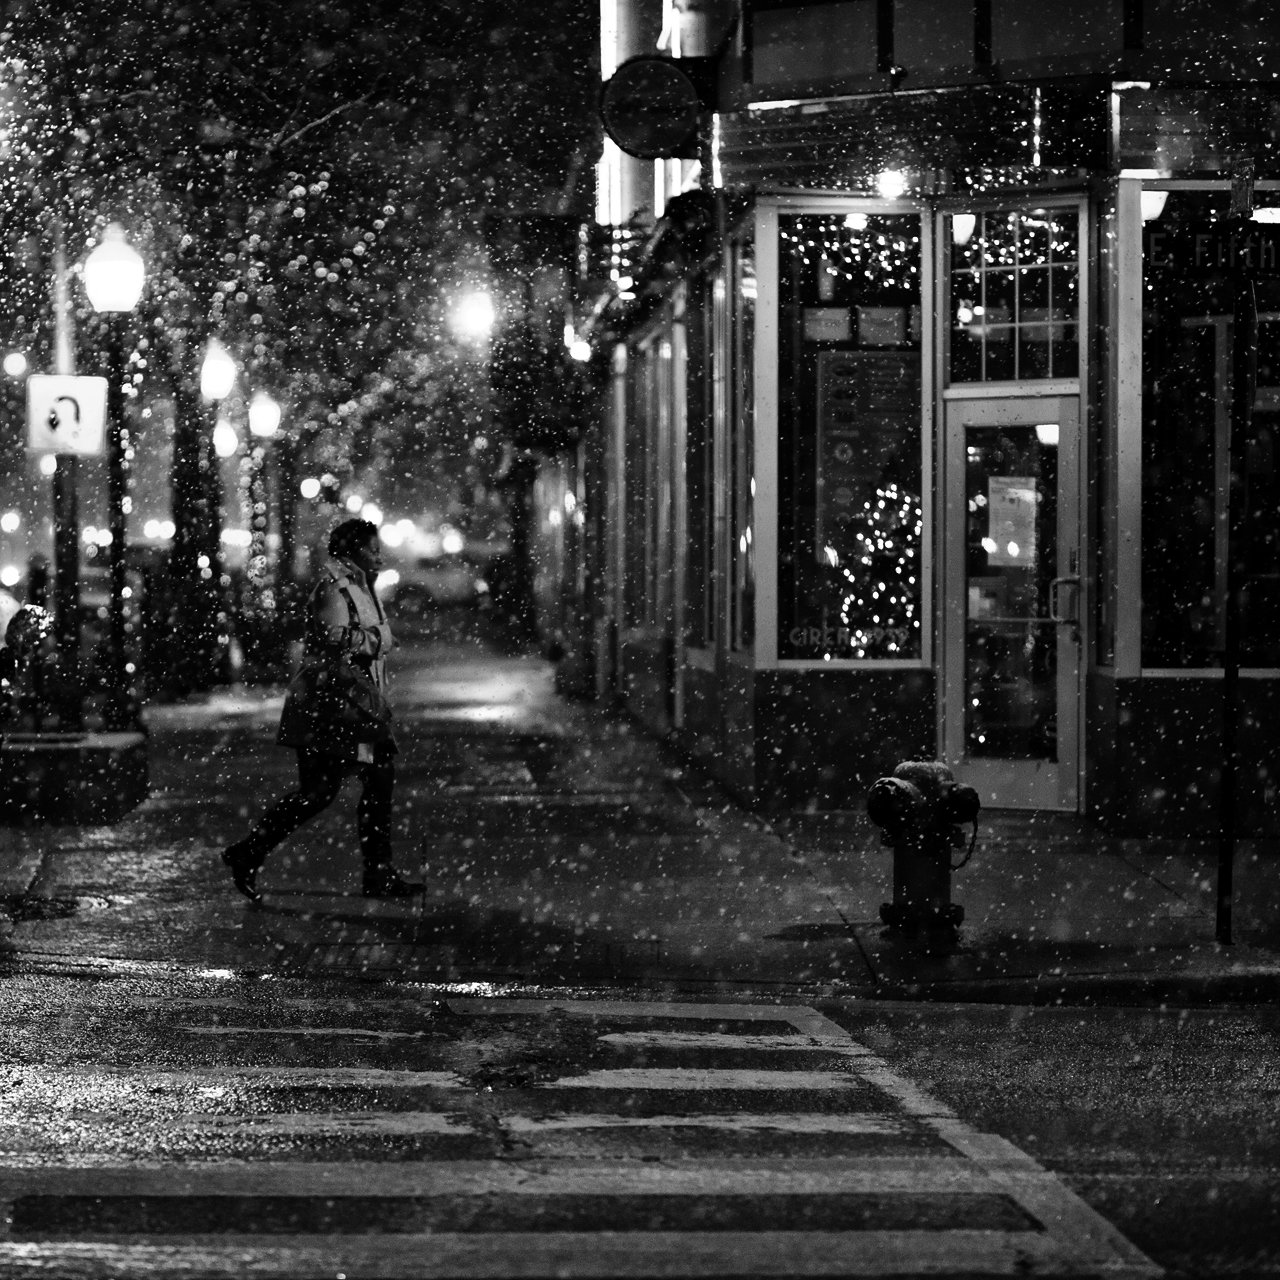 brian-day_counting-snowflakes-on-a-quiet-night.jpg